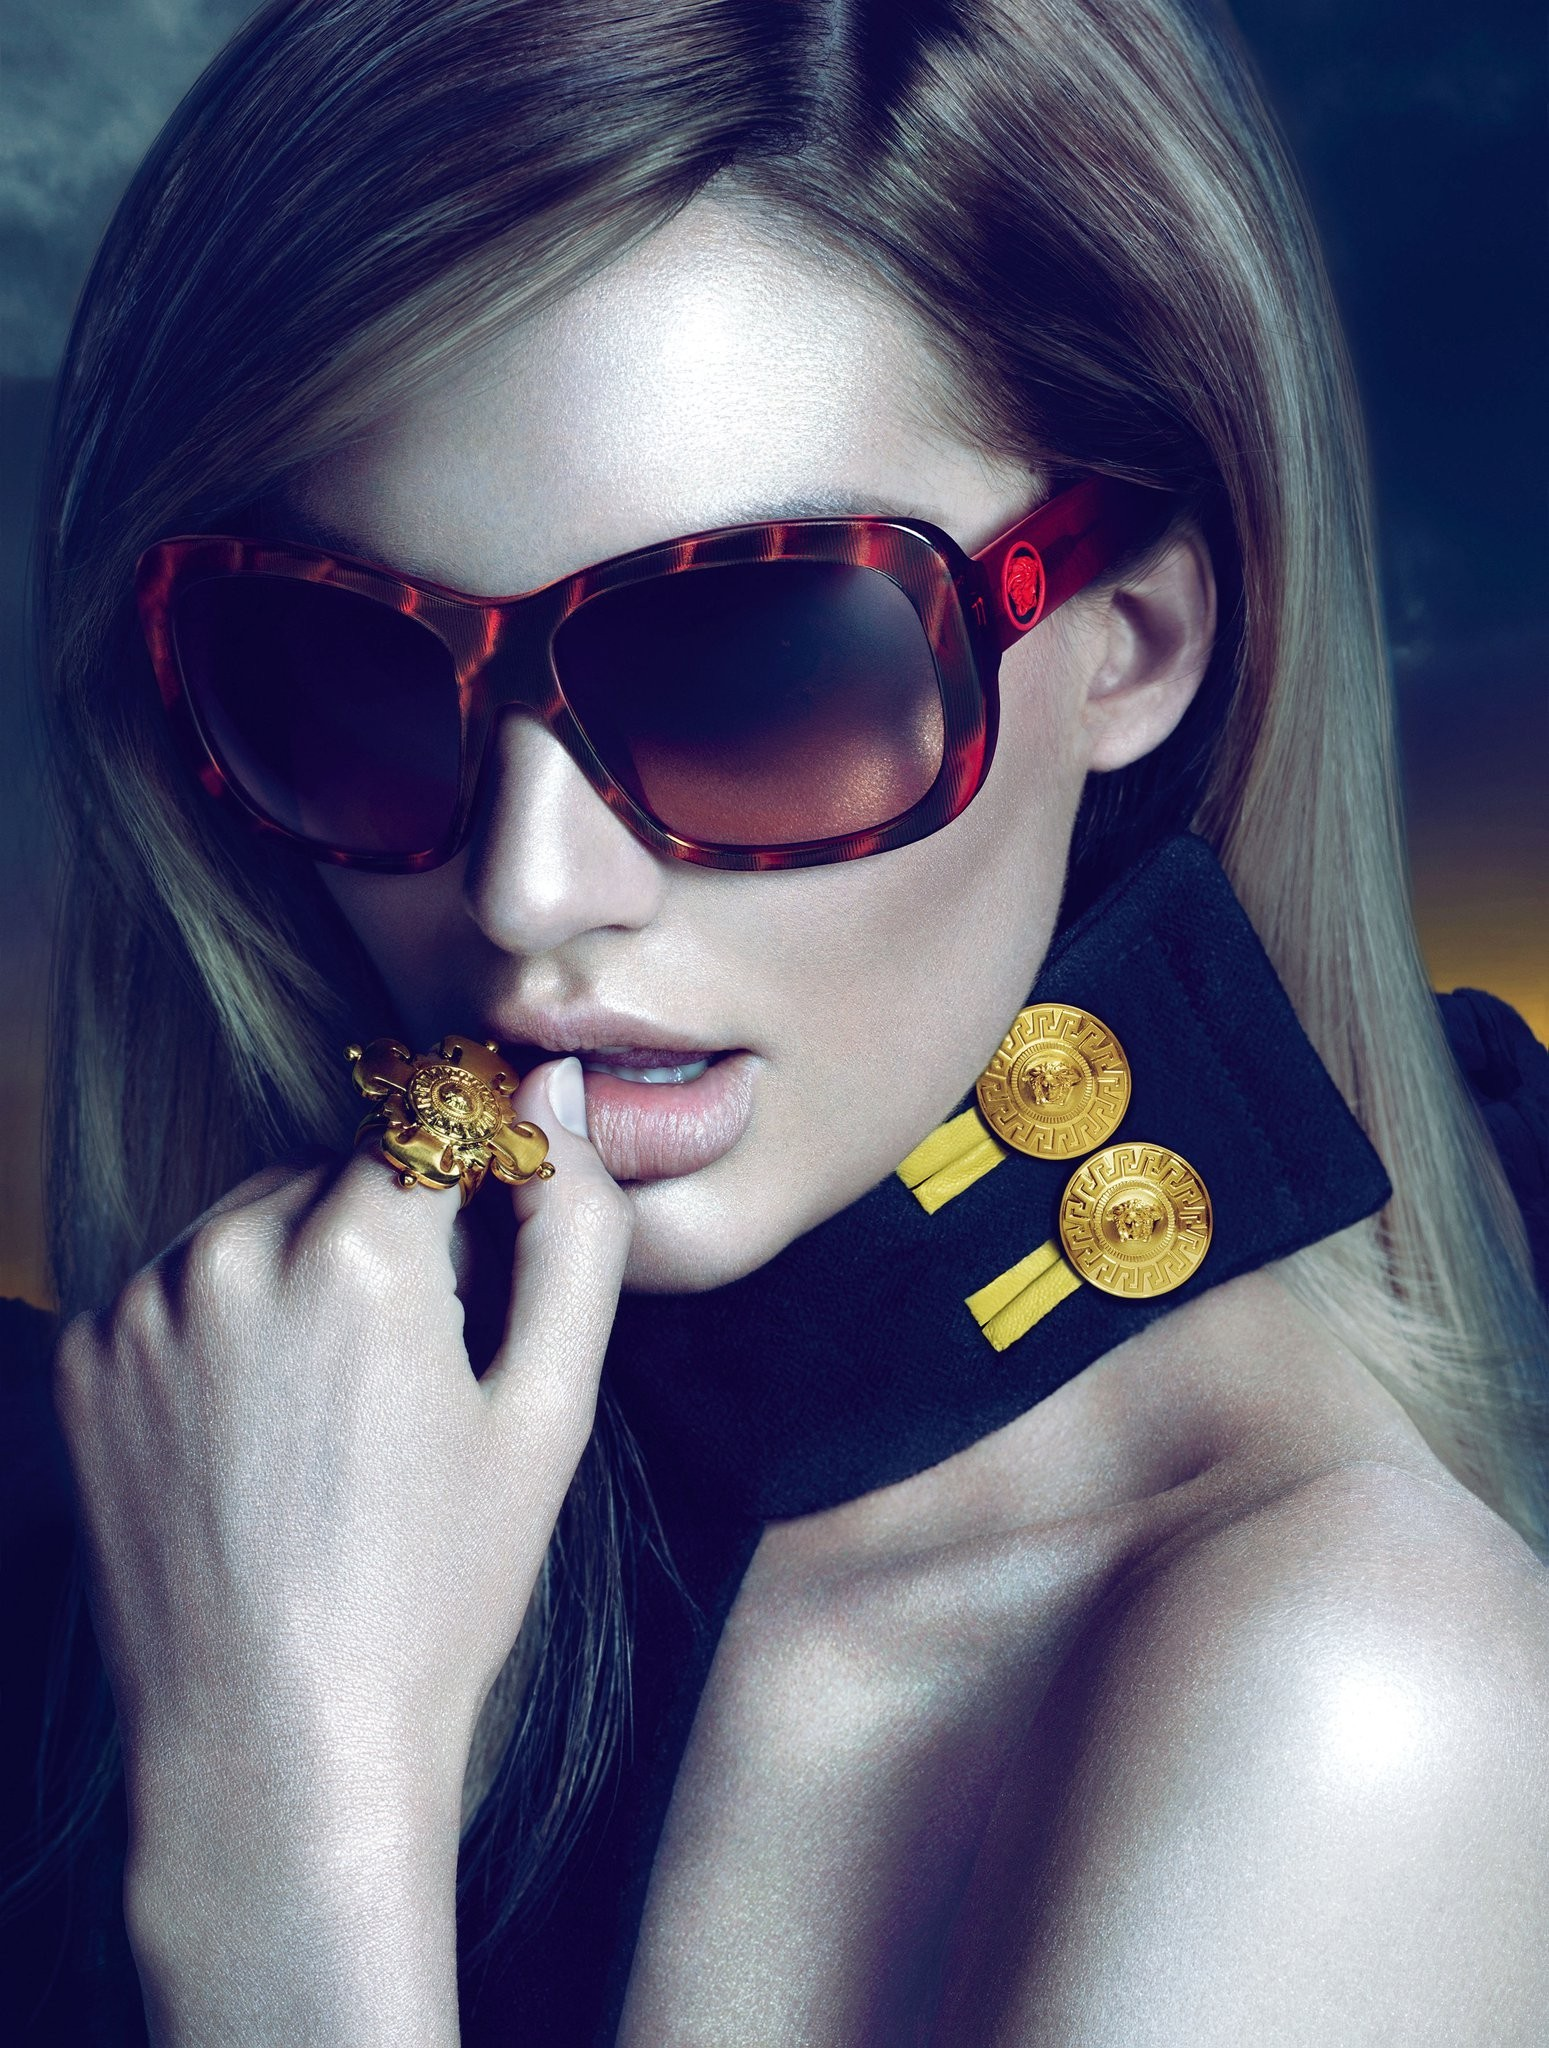 blondes woman sunglasses candice HD Wallpaper